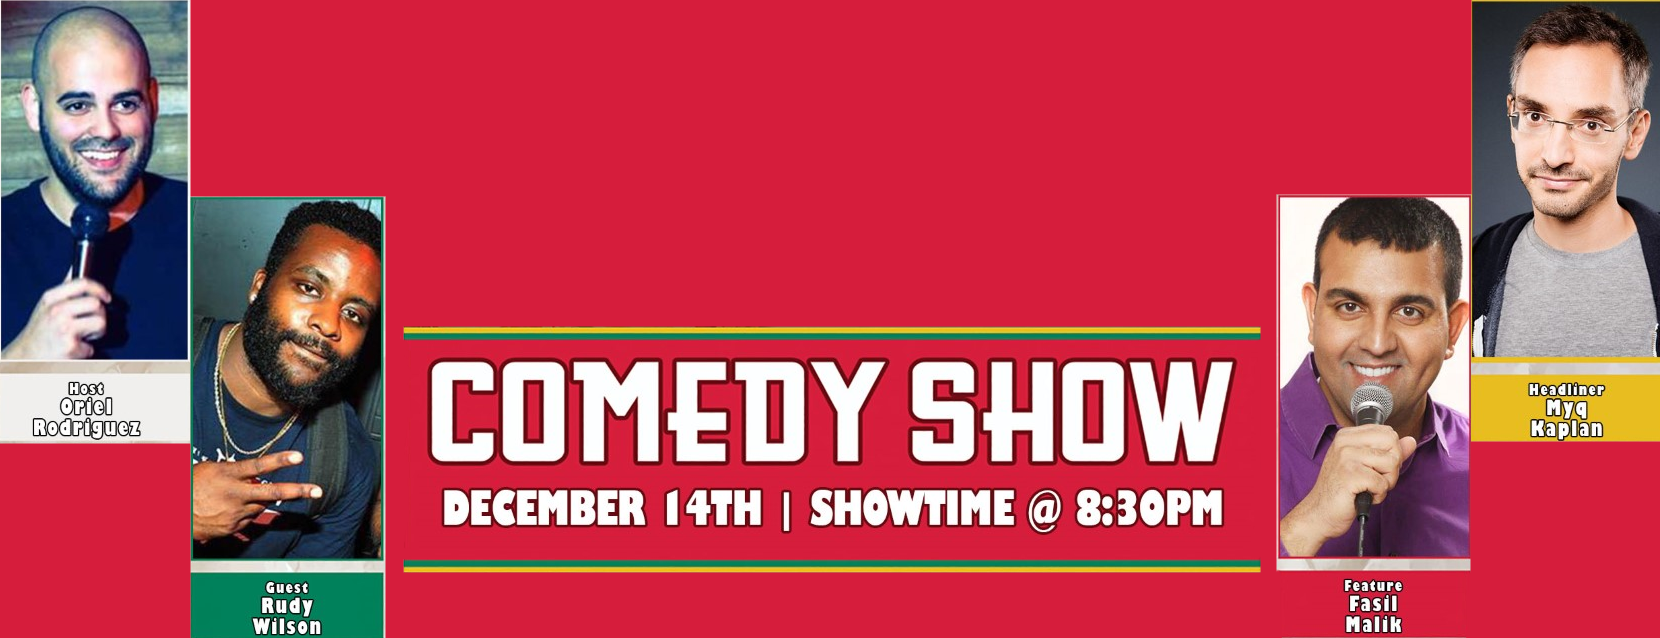 A flyer of a comedy show on December 14th 2018 with a showtime of 8:30 PM. The comedy is at Mama Jennies Italian Restaurant located at 11720 NE 2nd Ave Miami, FL 33161. It is hosted by Oriel Rodriguez with a line up including headliner Myq Kaplan, feature Fasil Malik, and guest Rudy Wilson. Please be advised there is a two-item minimum purchase.